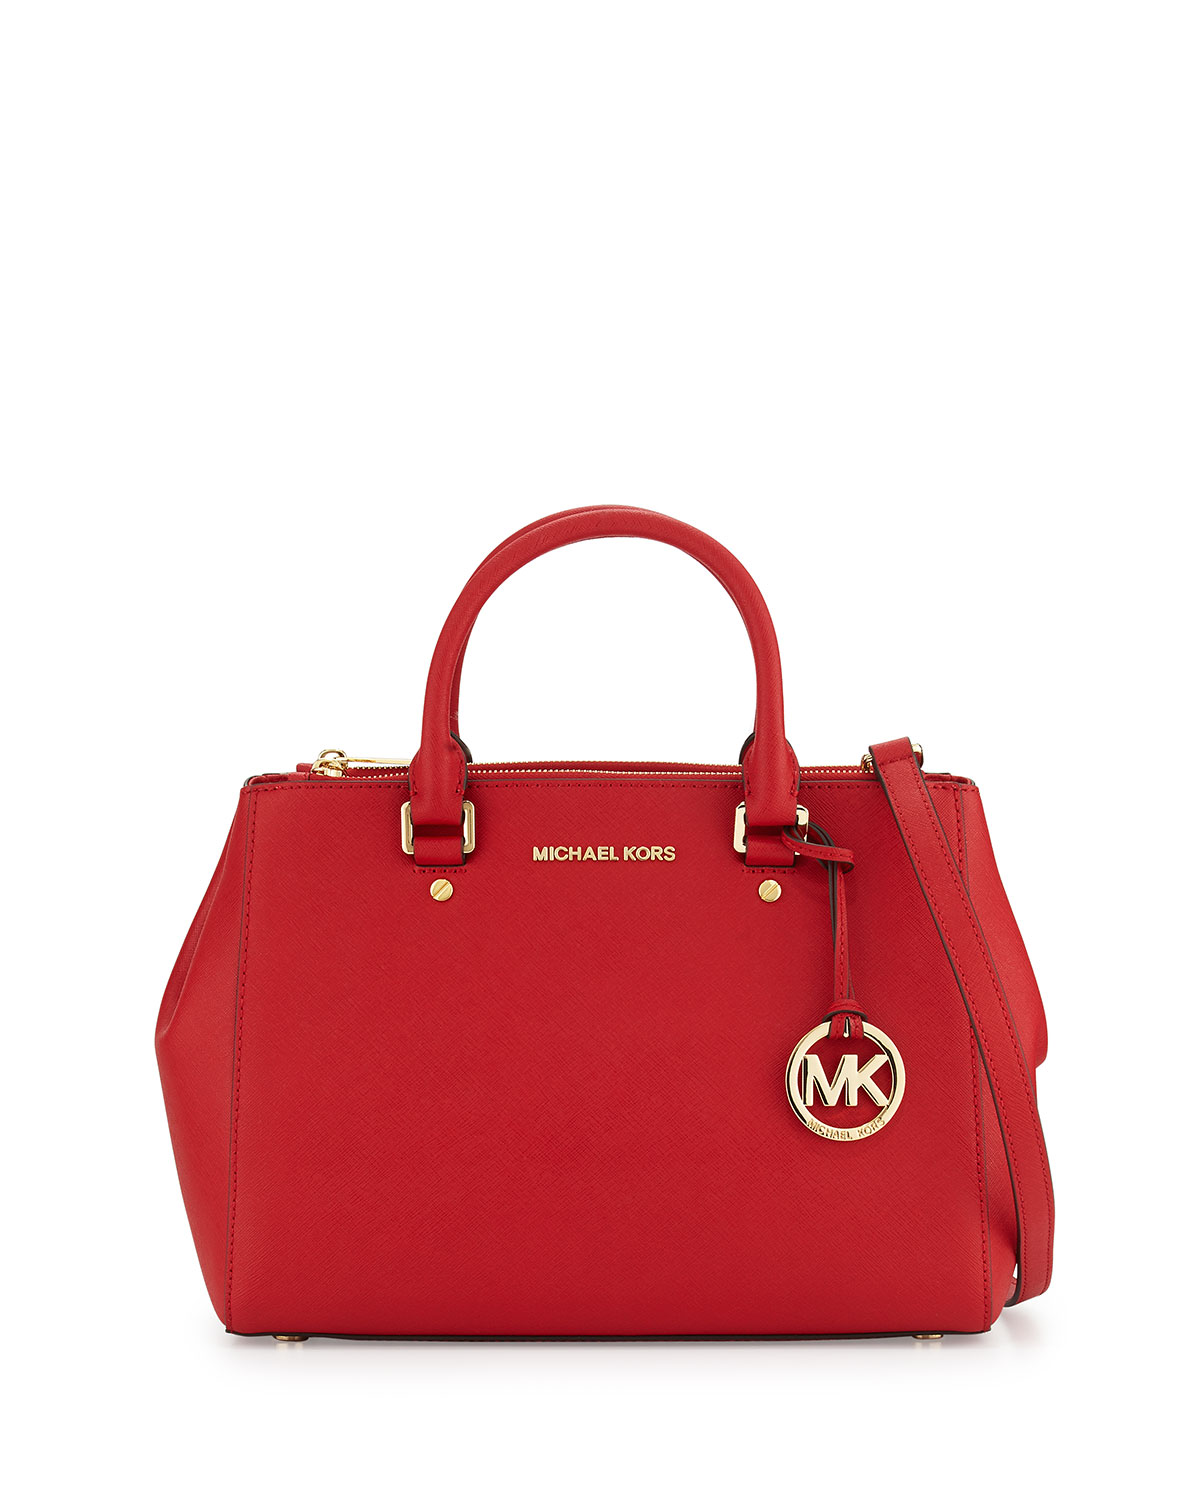 f81e983b3e20 MICHAEL Michael Kors Sutton Medium Saffiano Satchel Bag, Chili ...